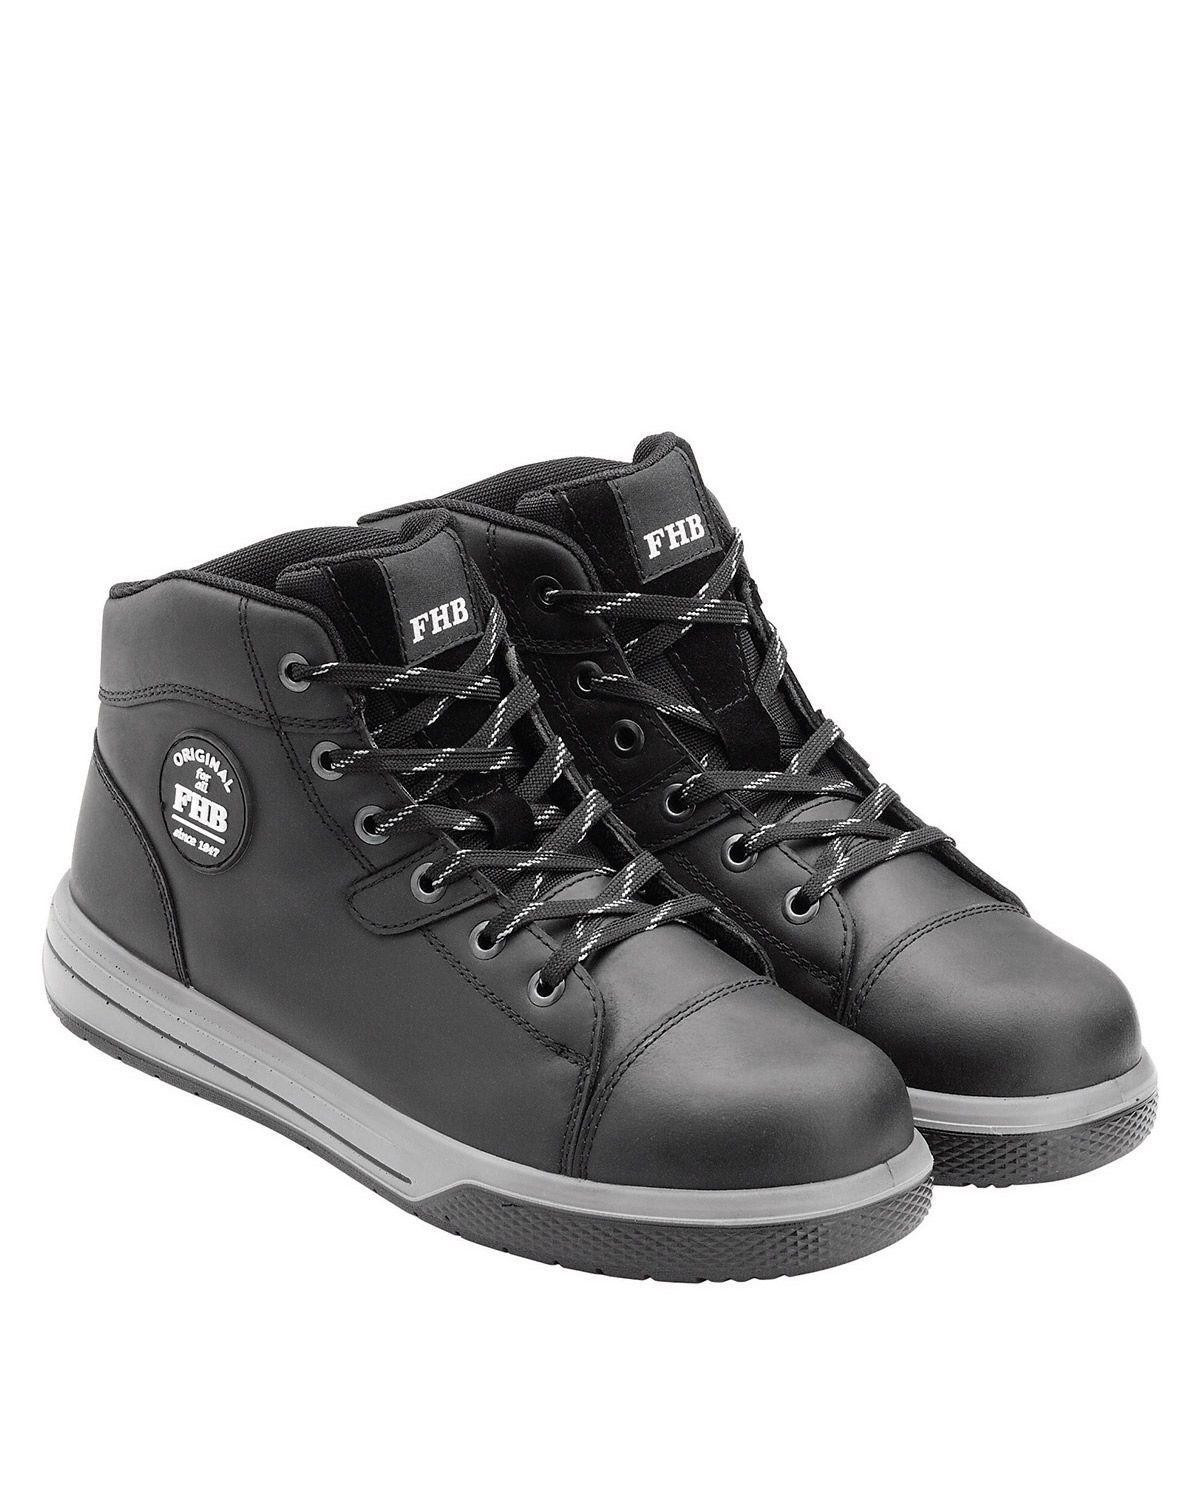 Image of   FHB High Top Sikkerhedssko - Linus (Sort, 39 EU / 5 UK)